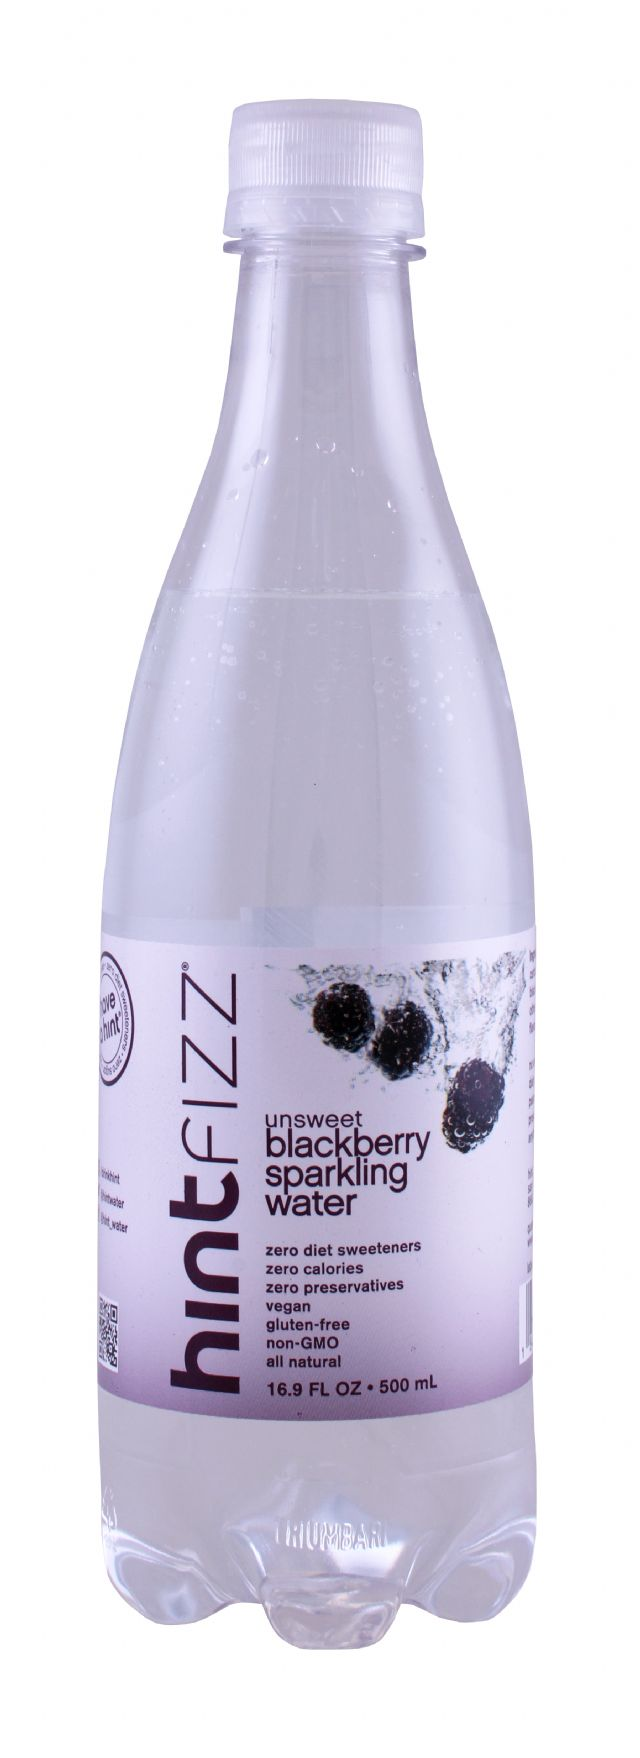 Hint Fizz: HintFizz_Blackberry